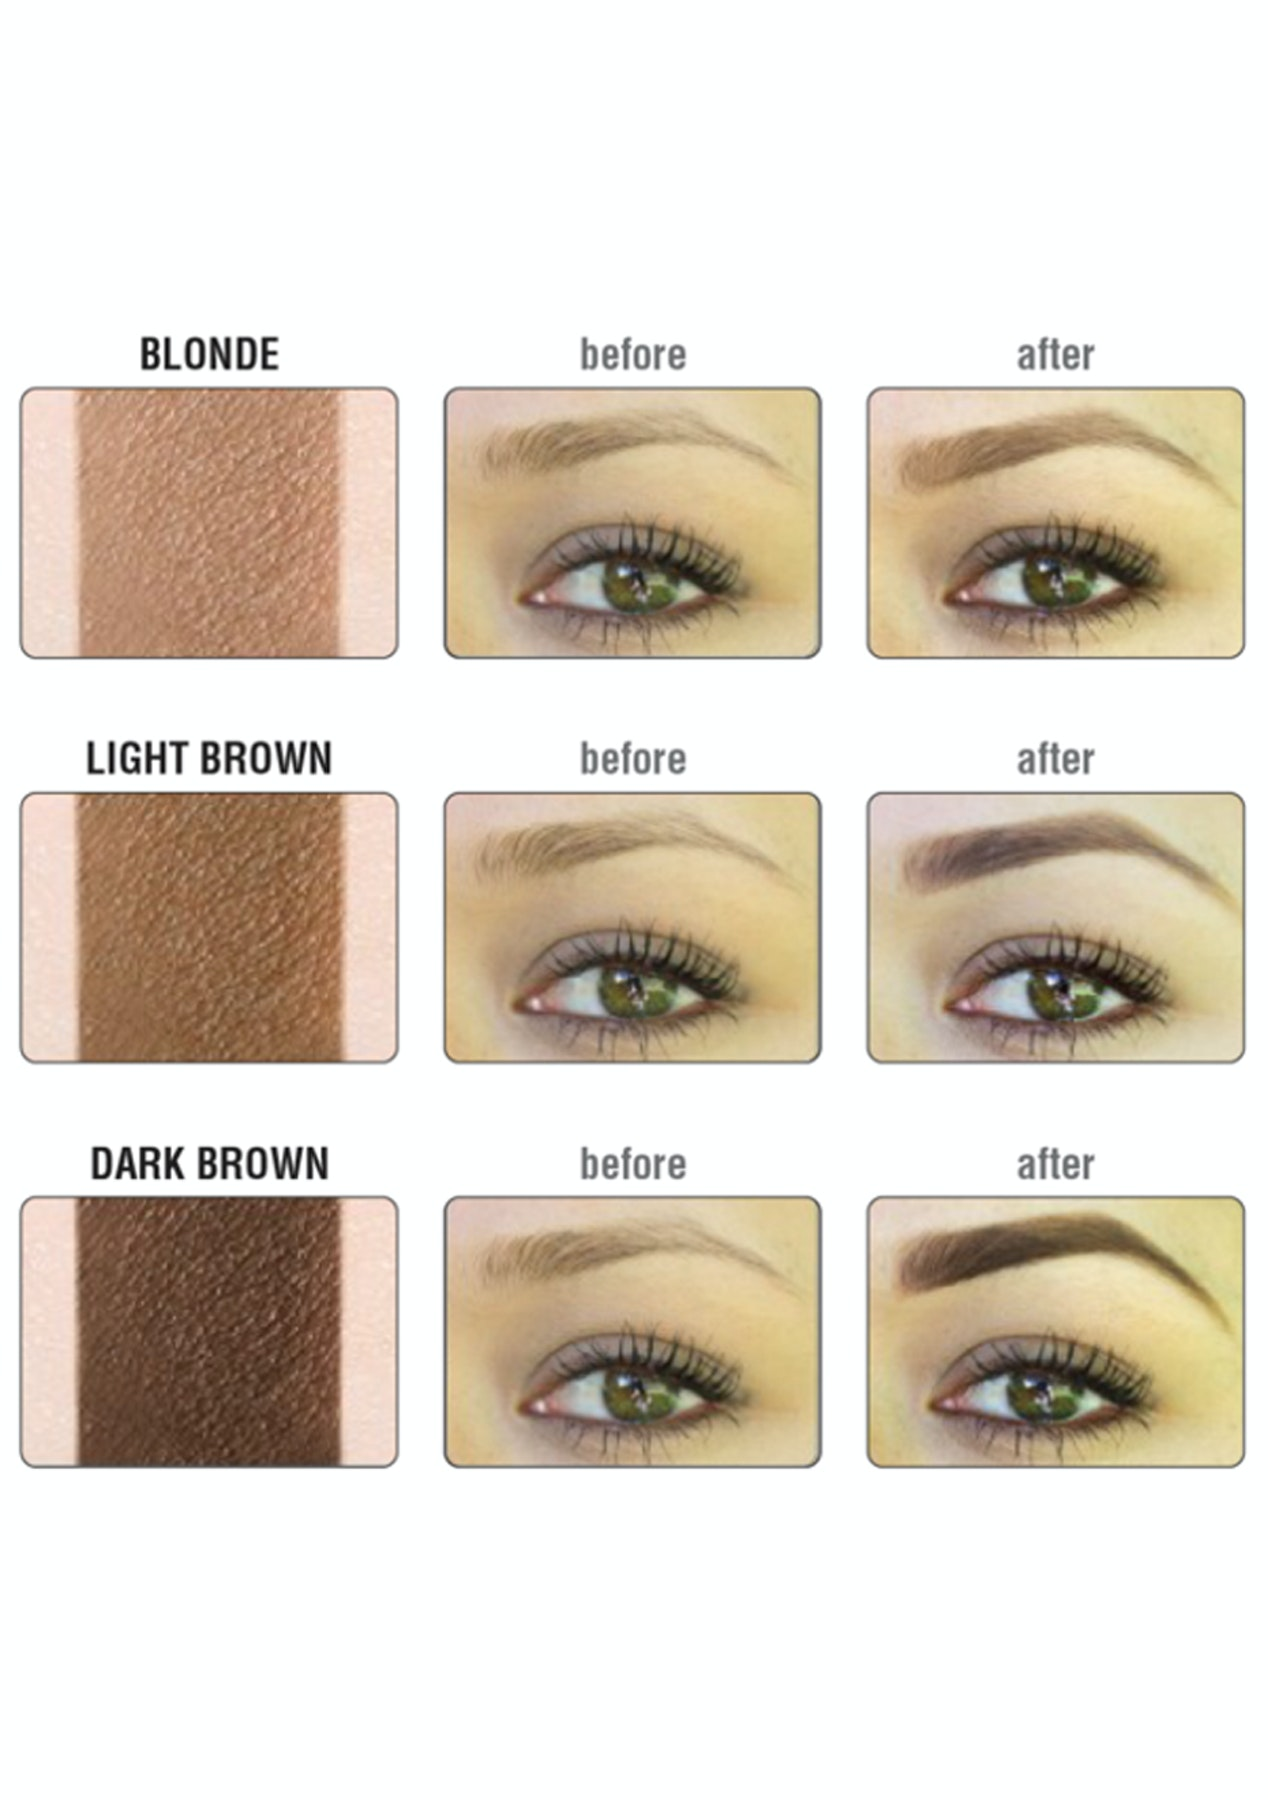 The Balm Brow Pow Eyebrow Powder Blonde The Balm More Onceit